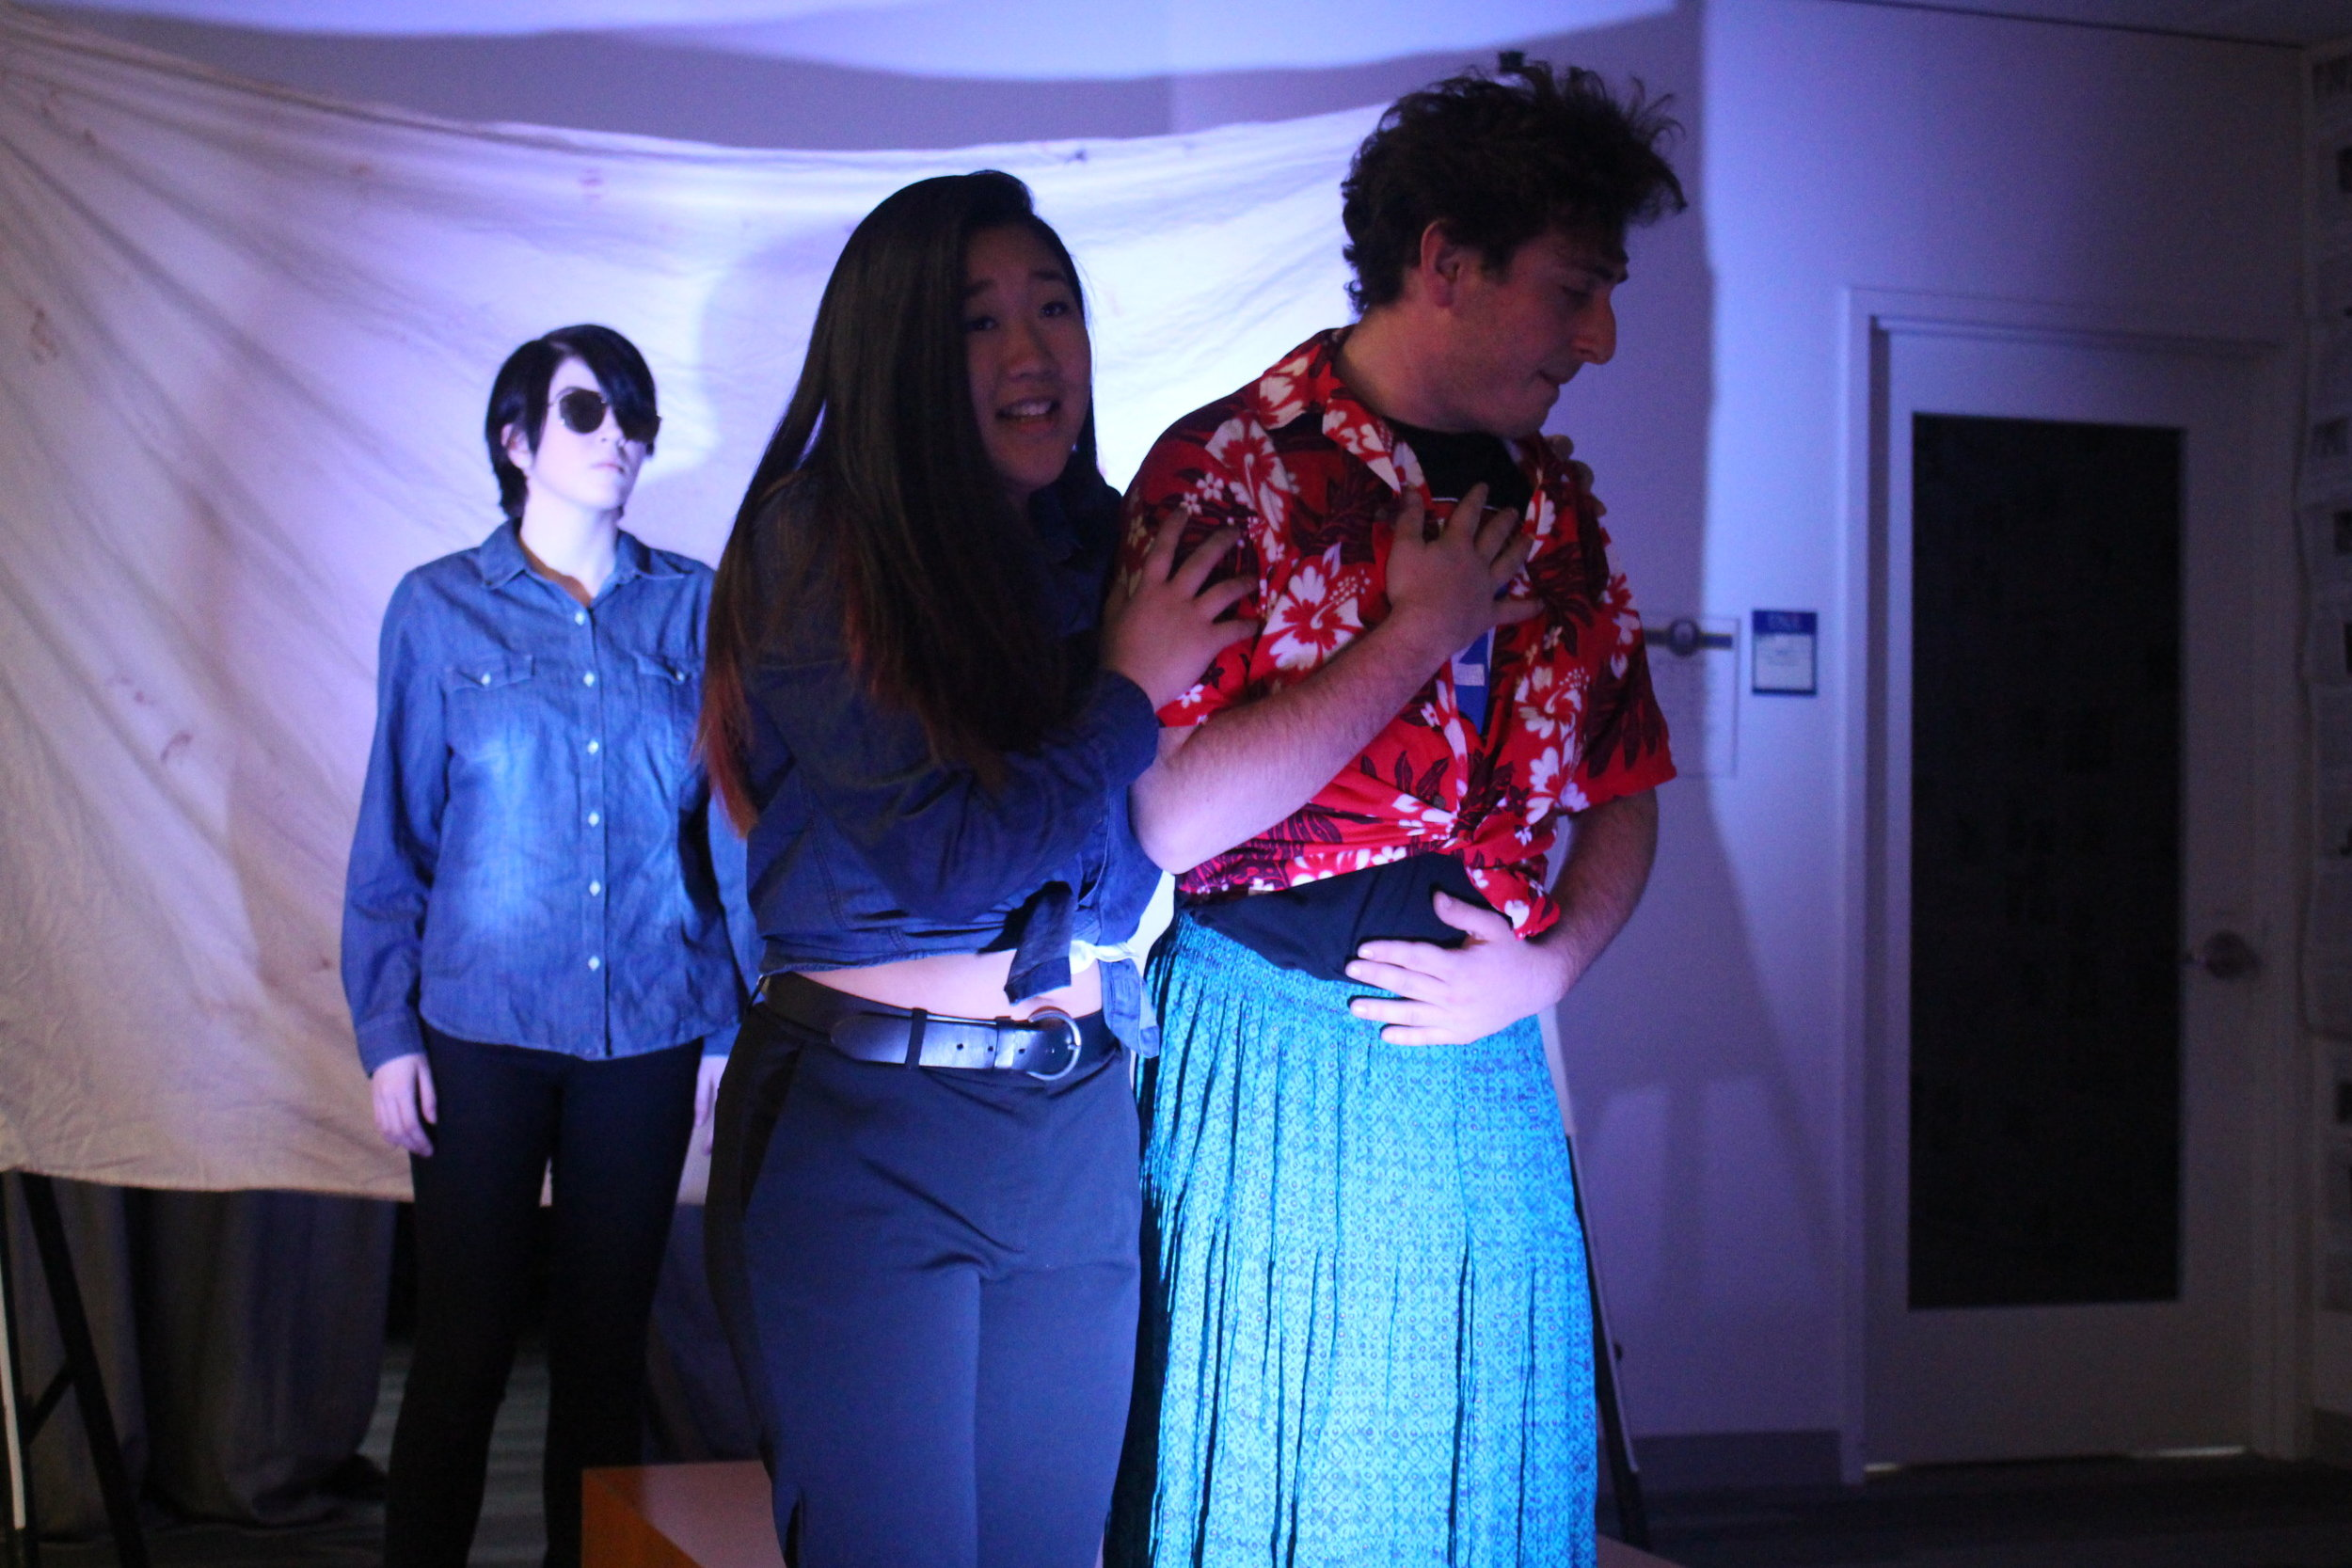 "(L to R) Cheyenne Anderson, Michelle Chan, and Sam Korobkin in ""The Untold Yippie Project"" by Becca Schlossberg."